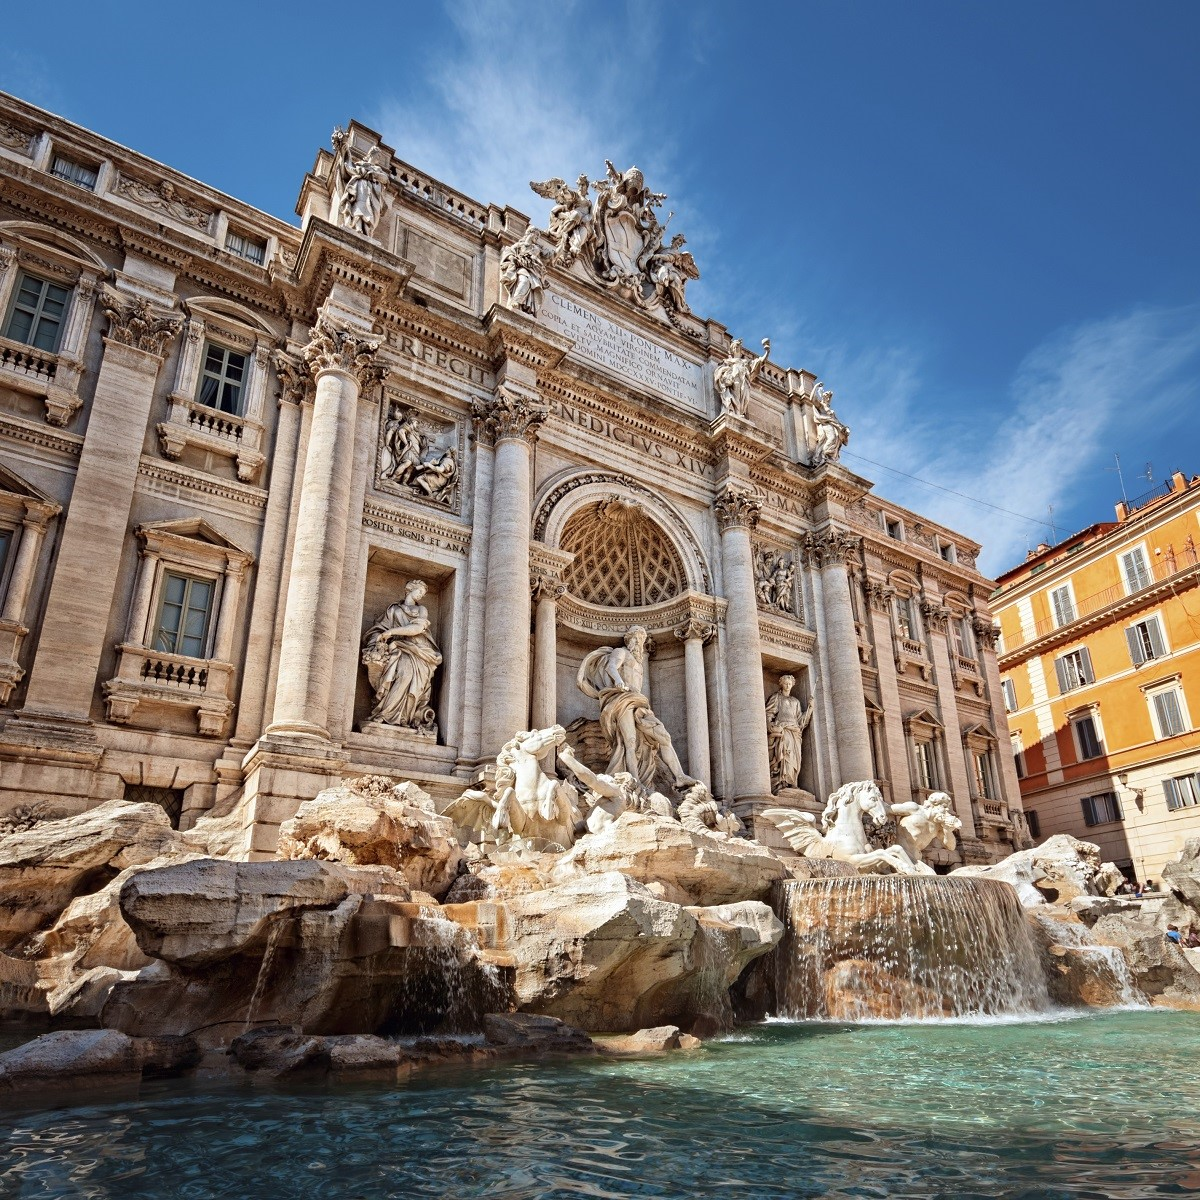 Trevi Fountain (Fontana di Trevi) is one of the most famous landmark in Rome.